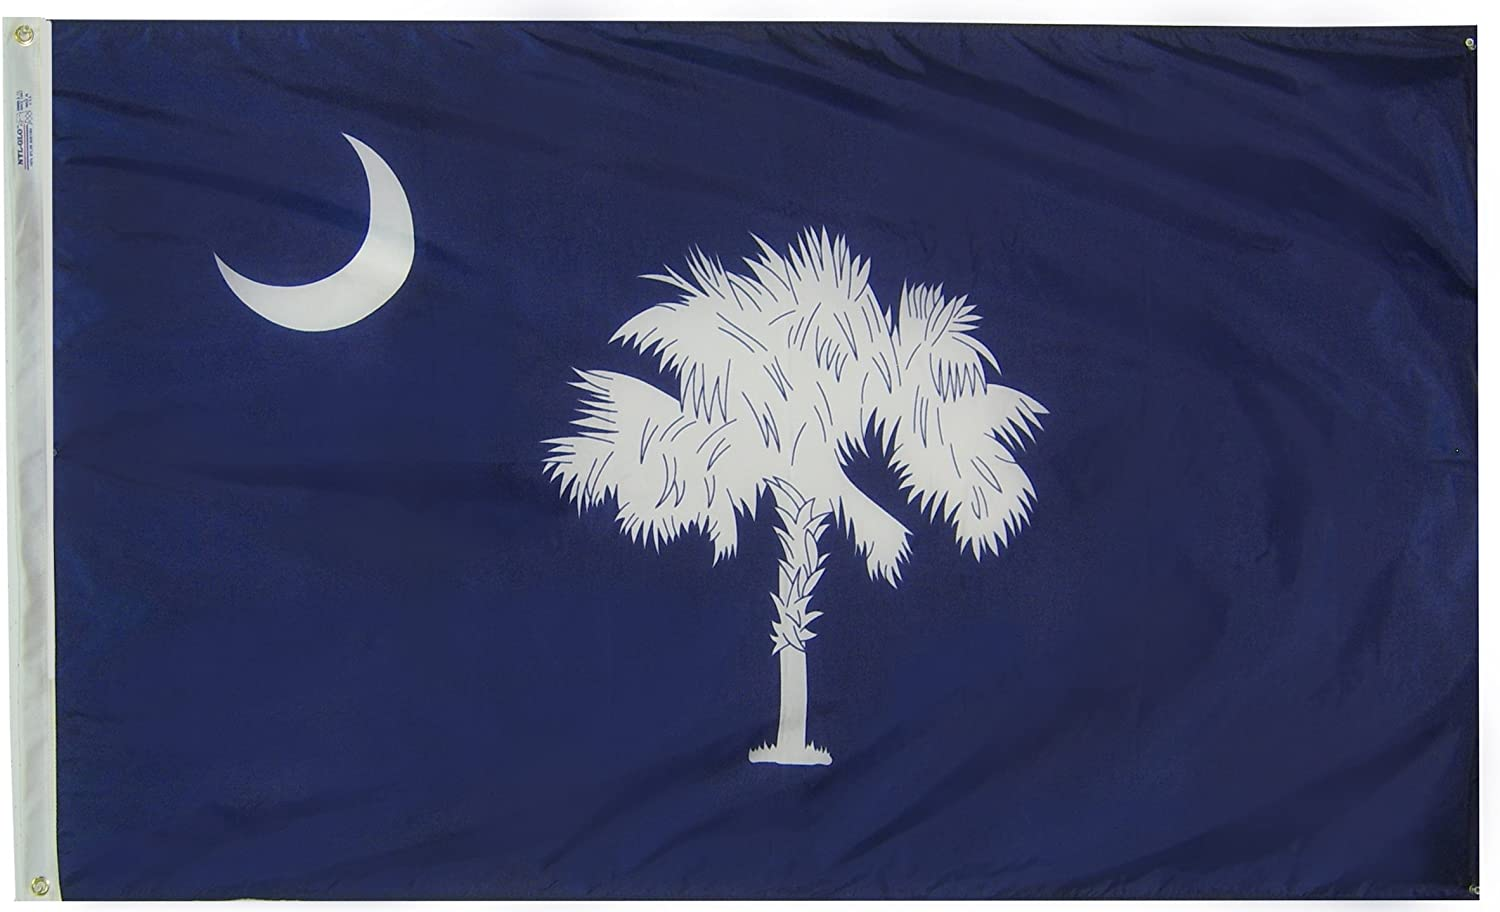 South Carolina State Flag 3x5 ft  Nylon SolarGuard 100% Made in USA